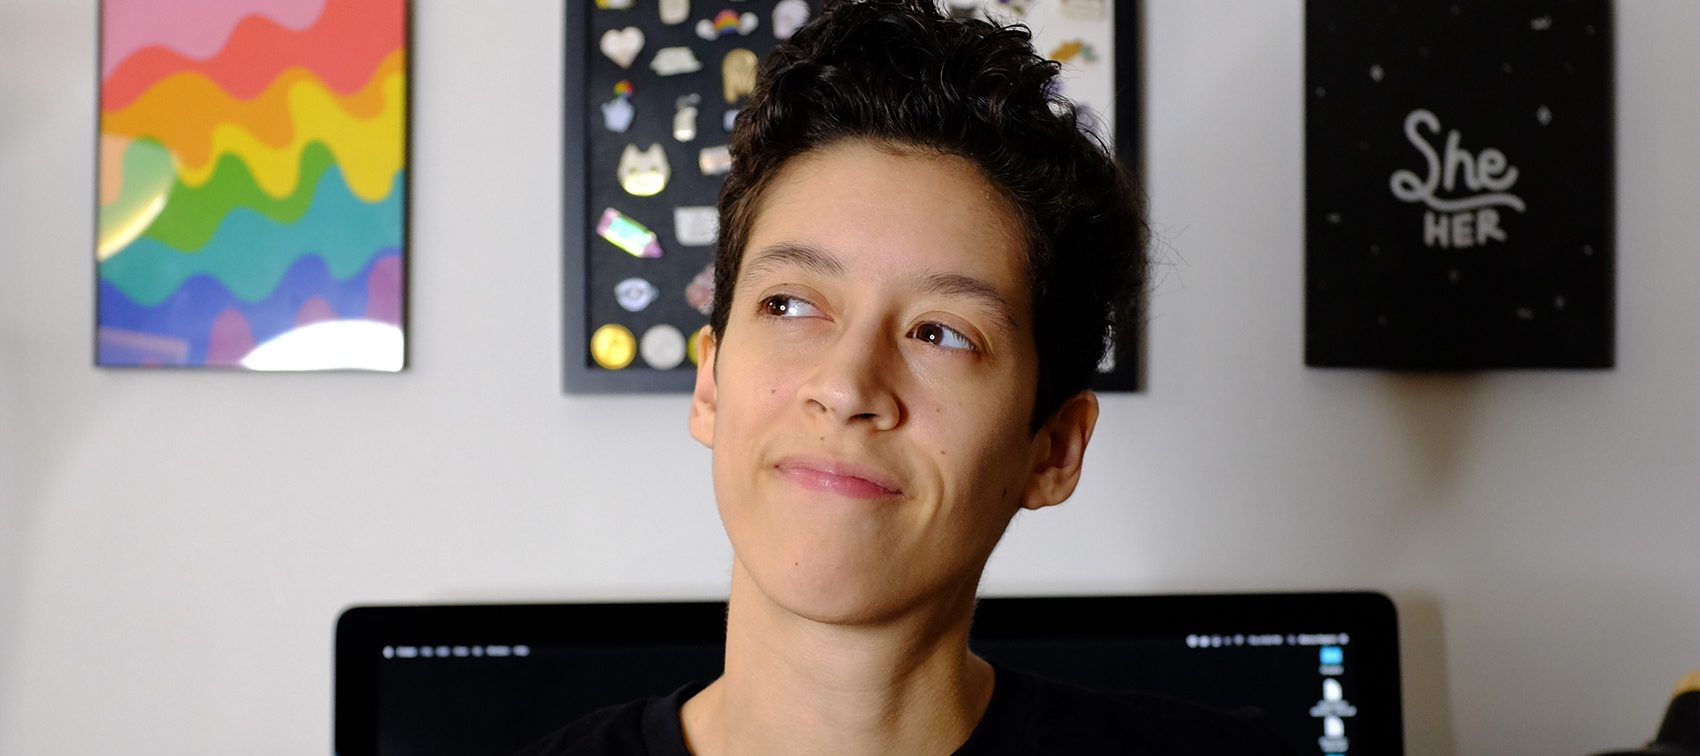 A medium-skinned woman with her short, black hair worn in a pixie cut wears a black shirt with the phrase